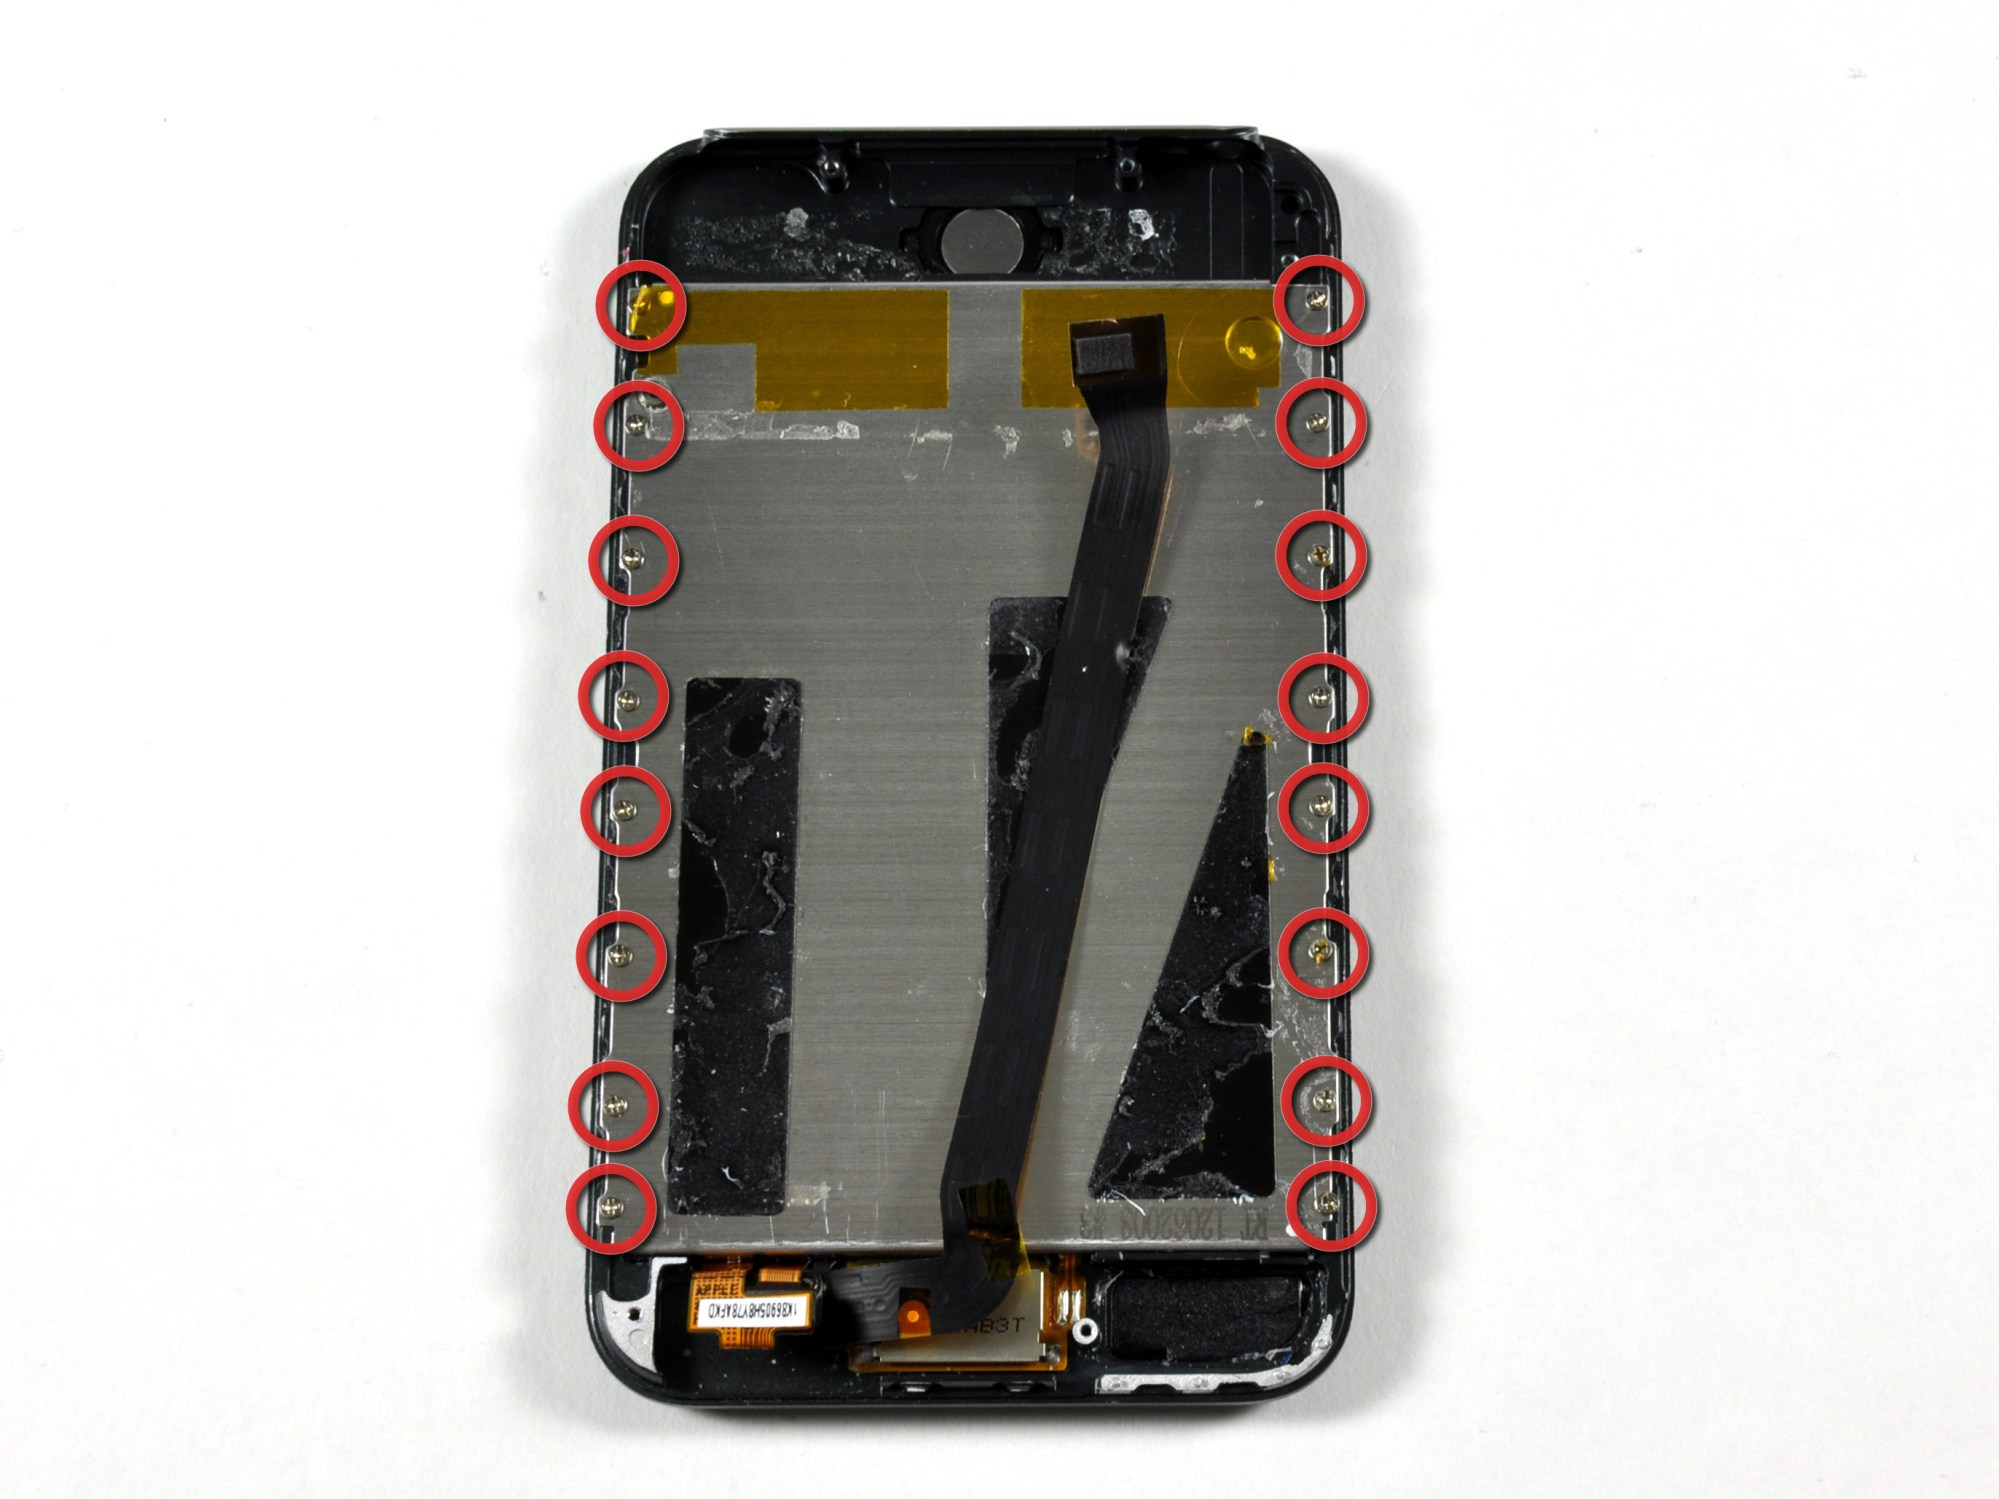 hight resolution of ipod touch wiring diagram wiring diagram showipod touch 1st gen wiring diagram auto wiring diagram ipod